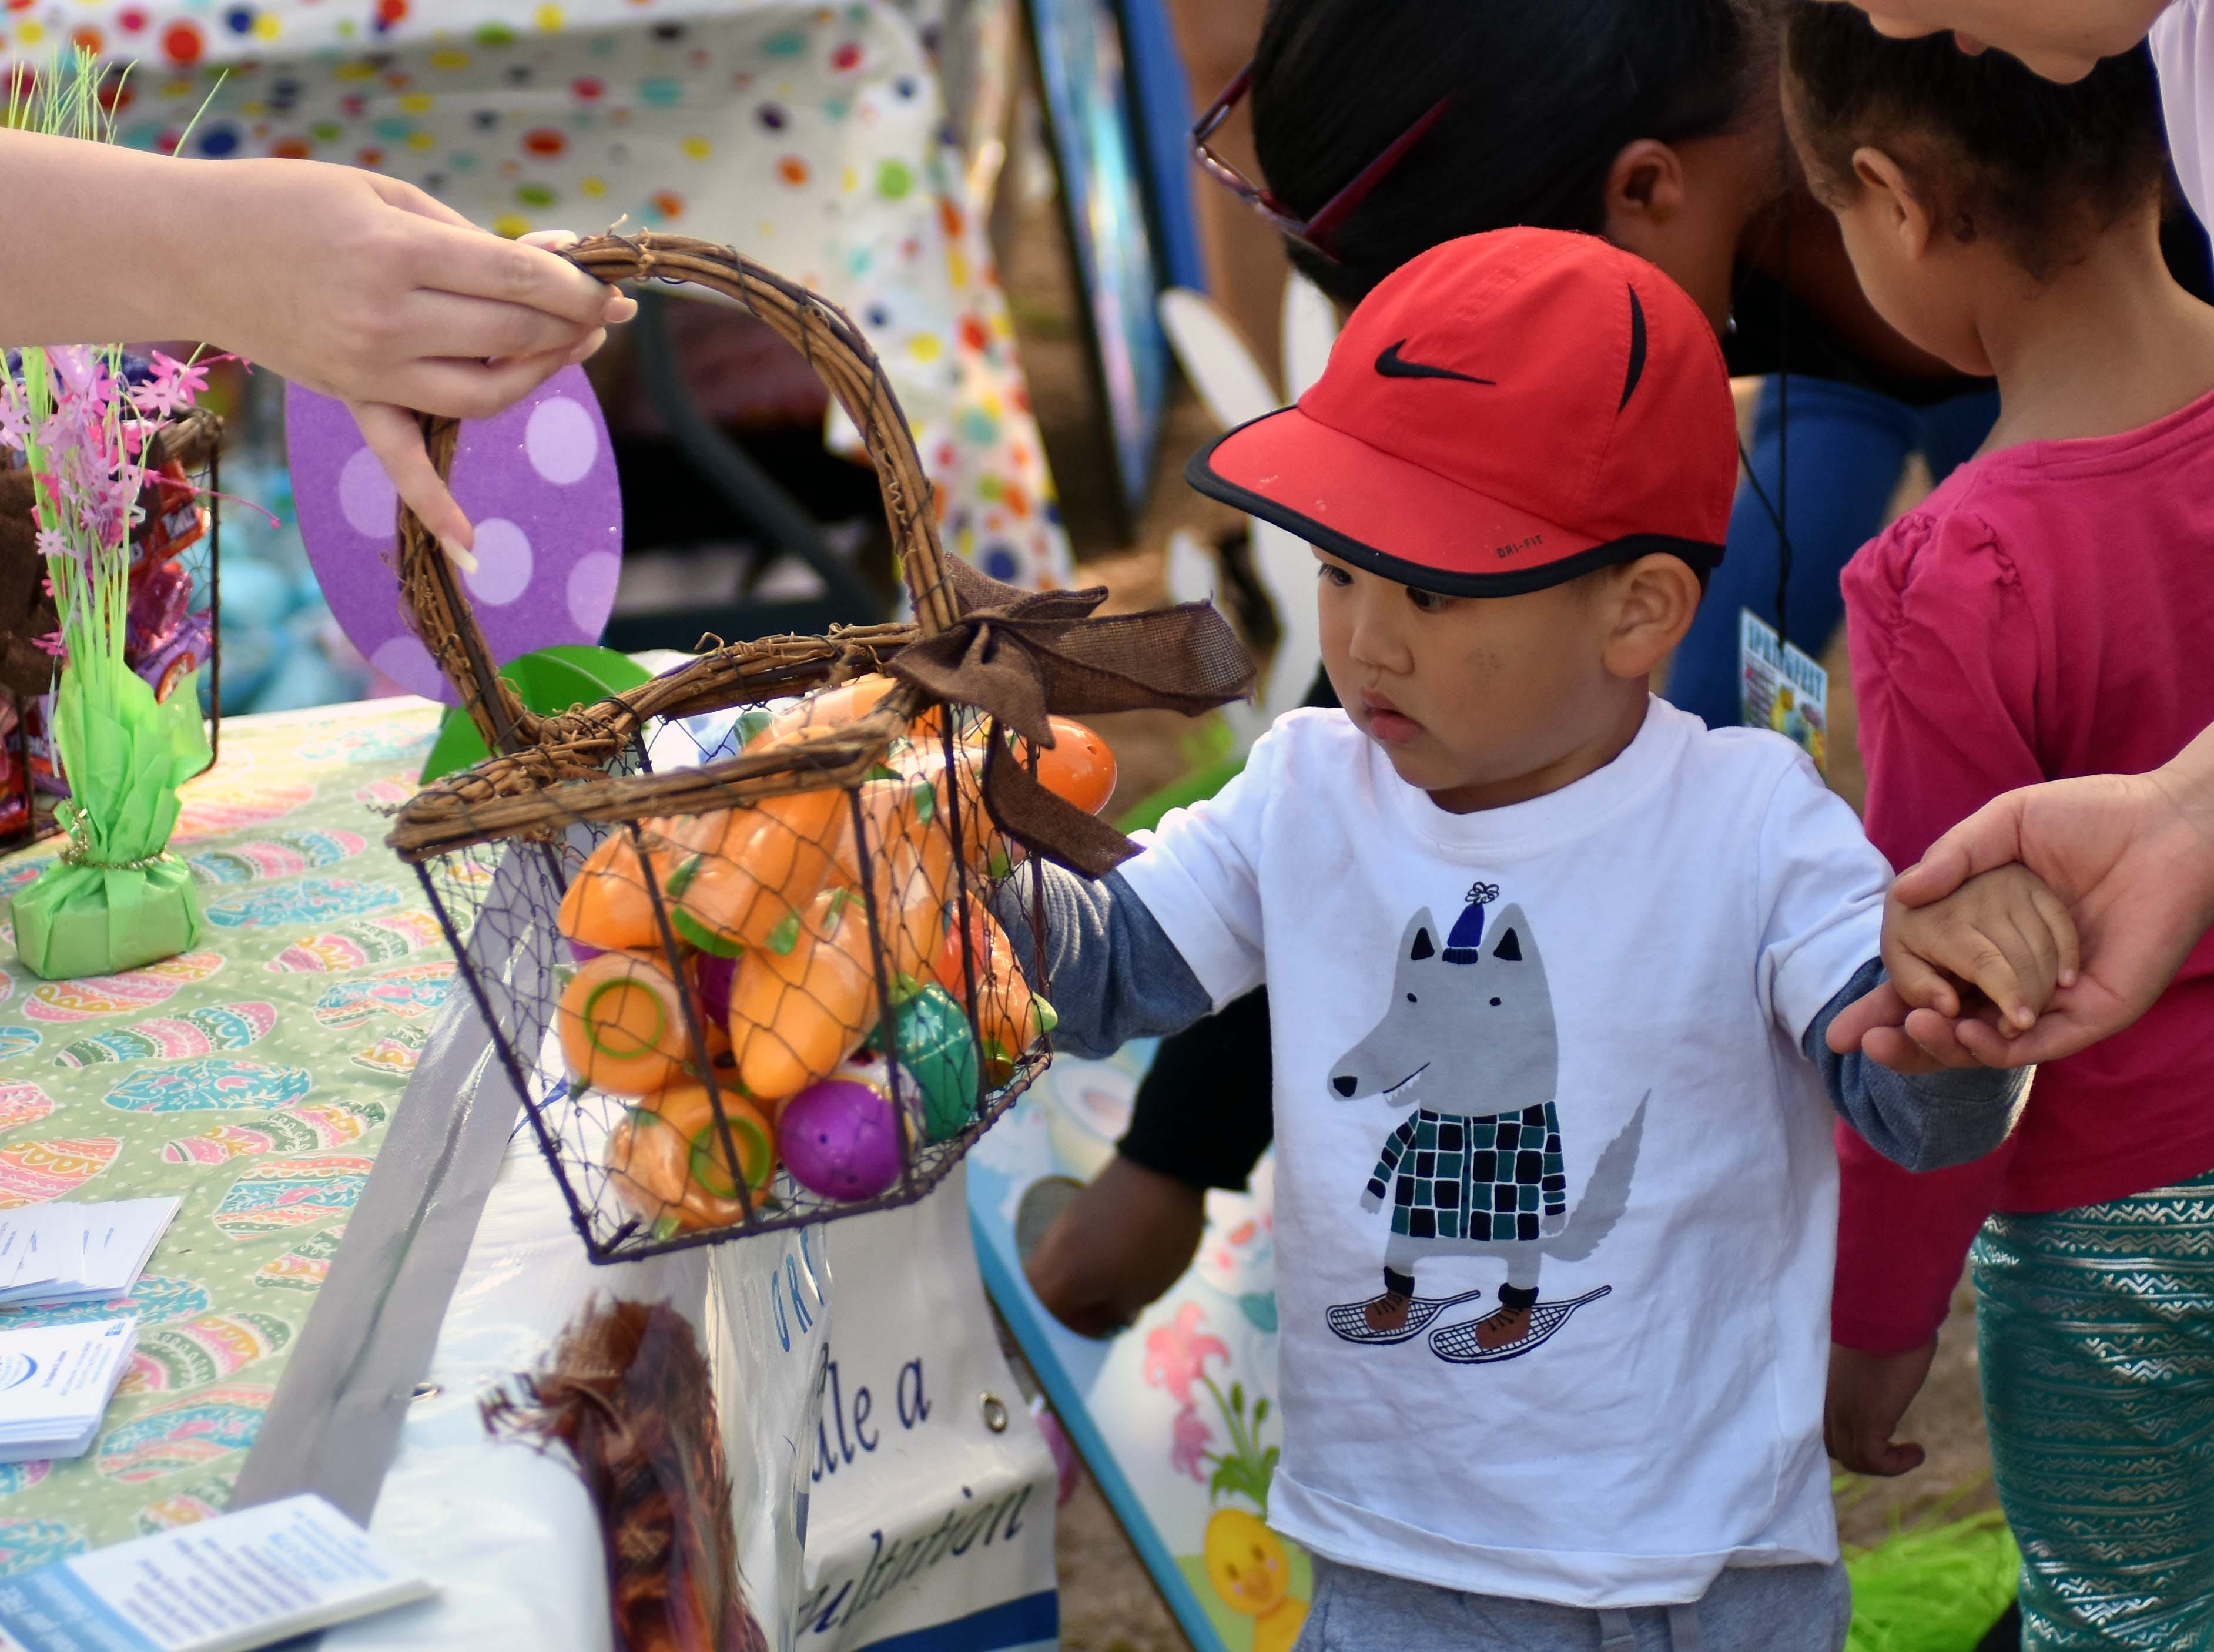 Patrick Wu, 2 and a half, gets to pick an egg from a basket provided by Children's Dental Clinic during SpringFest at Young Park on Saturday, April 20, 2019.